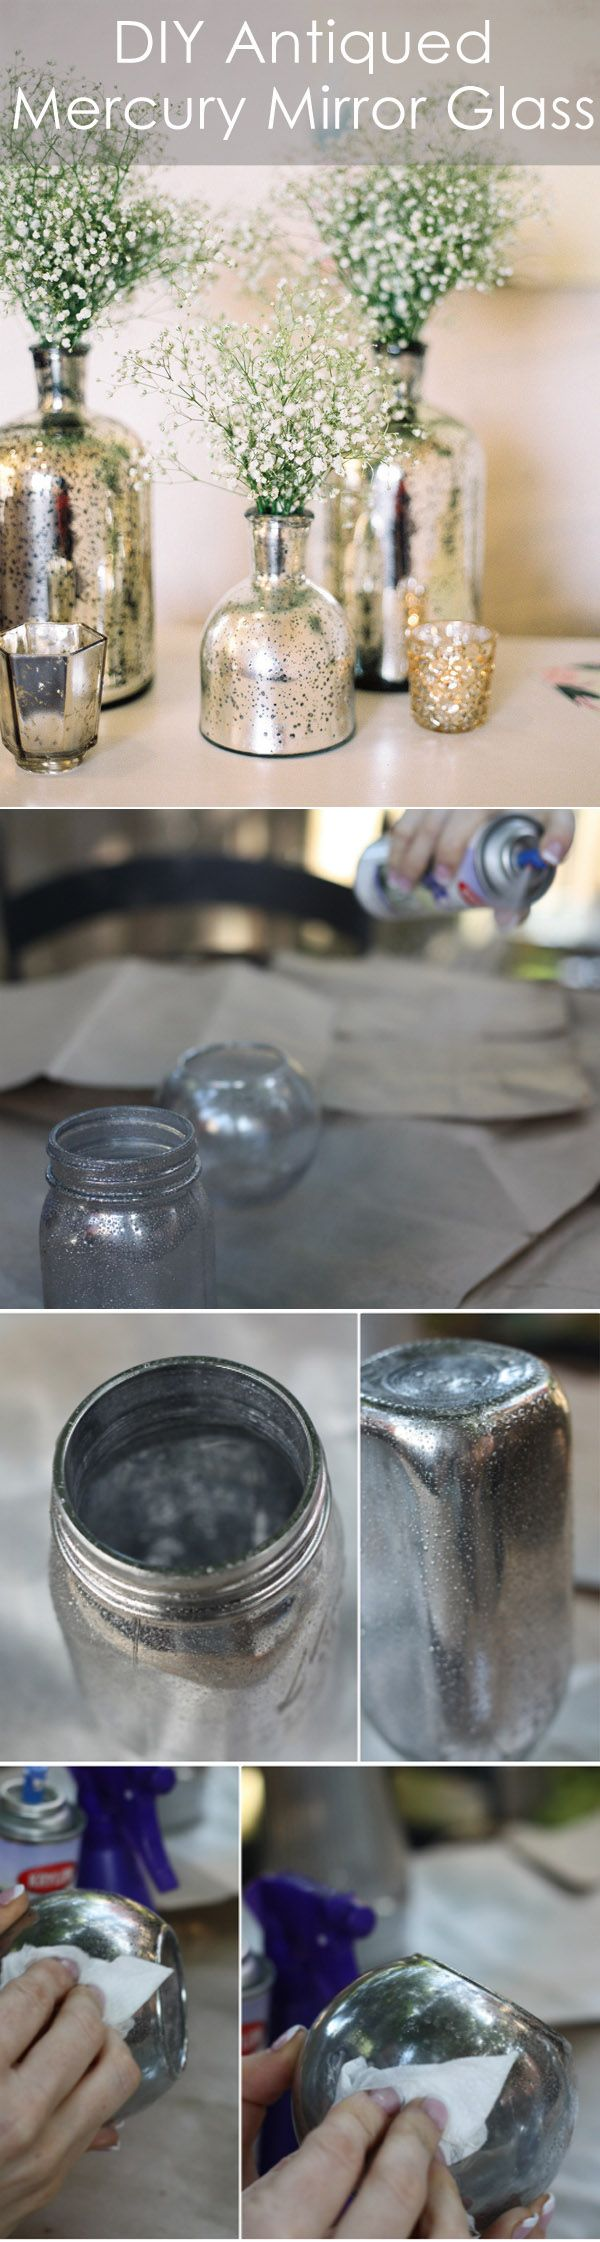 20 Beautiful Diy Mercury Glass Paint Ideas Noted List